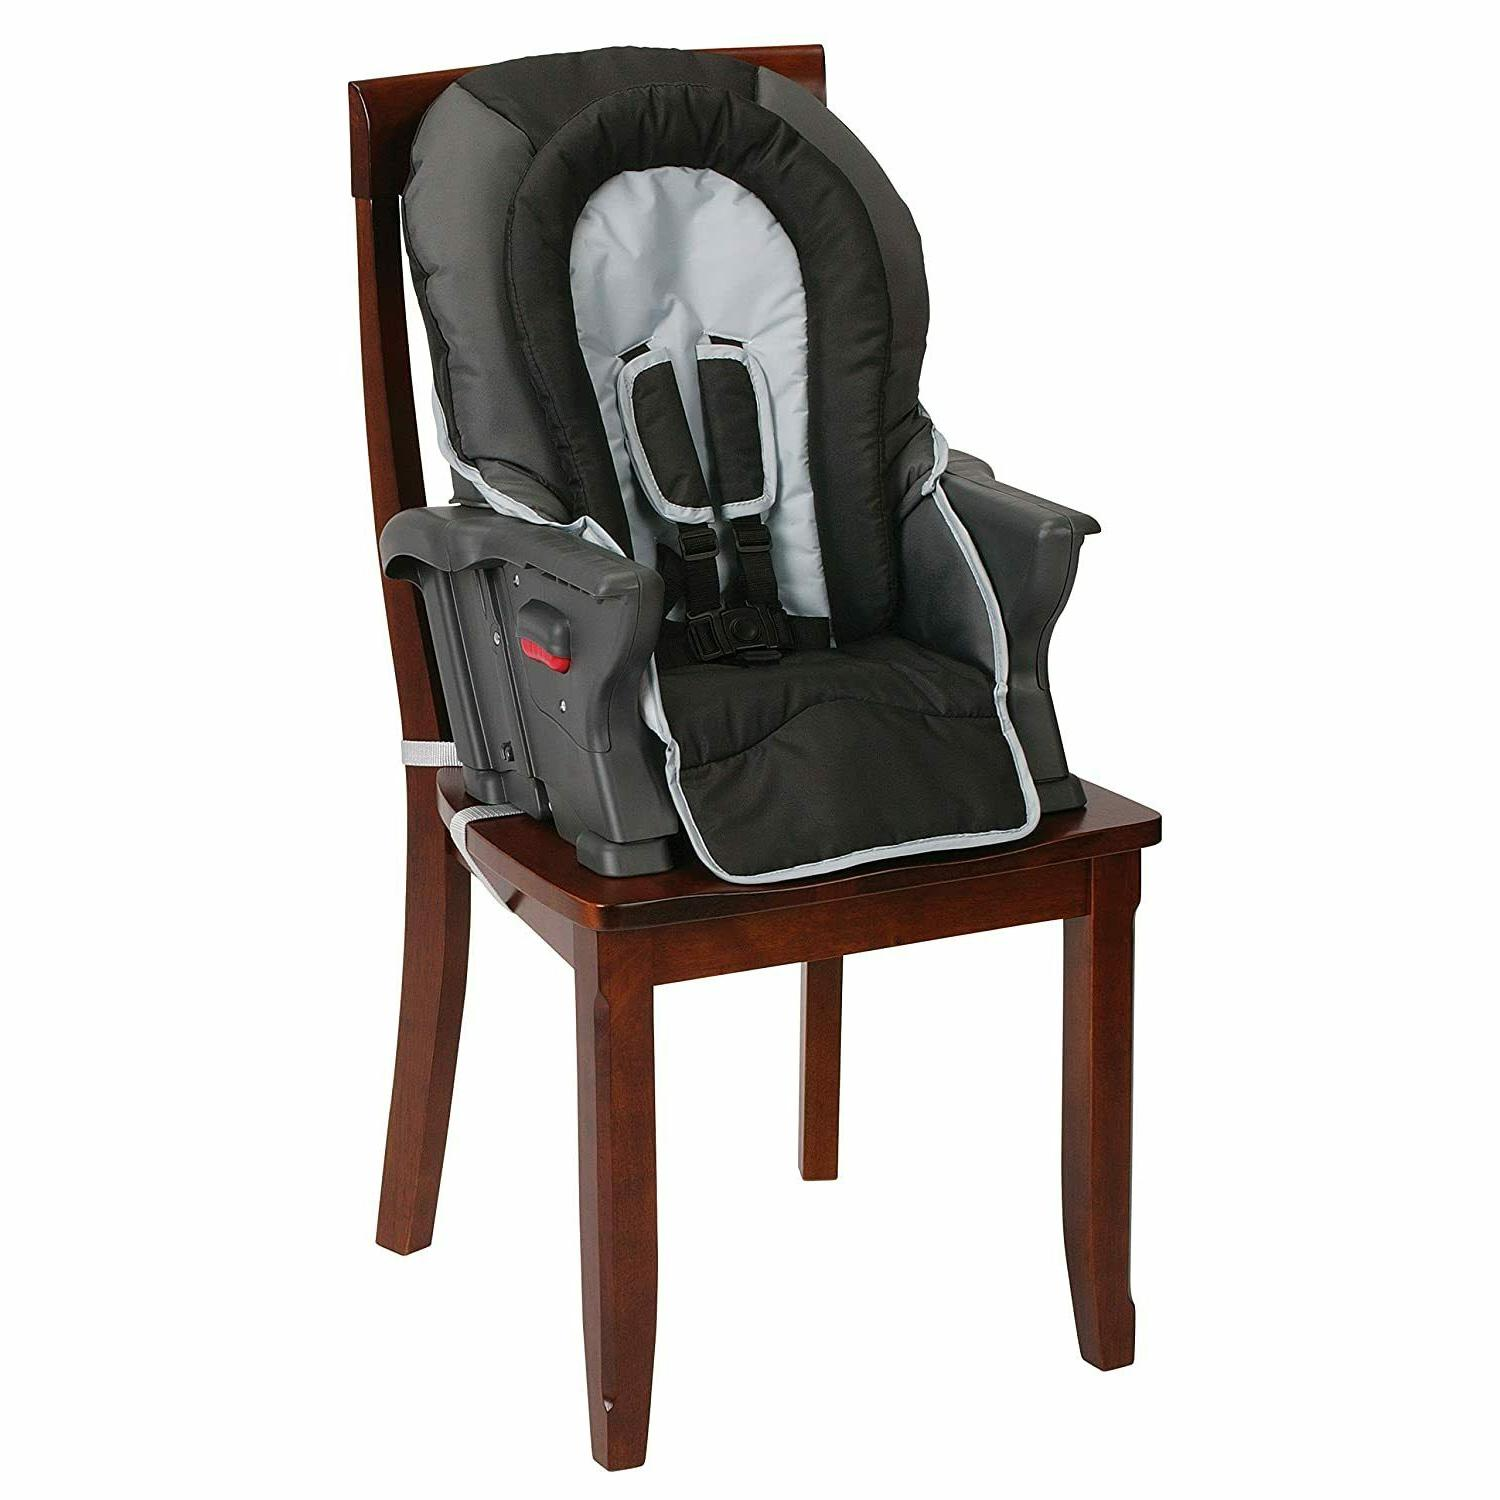 DuoDiner LX High Converts to Booster Seat,